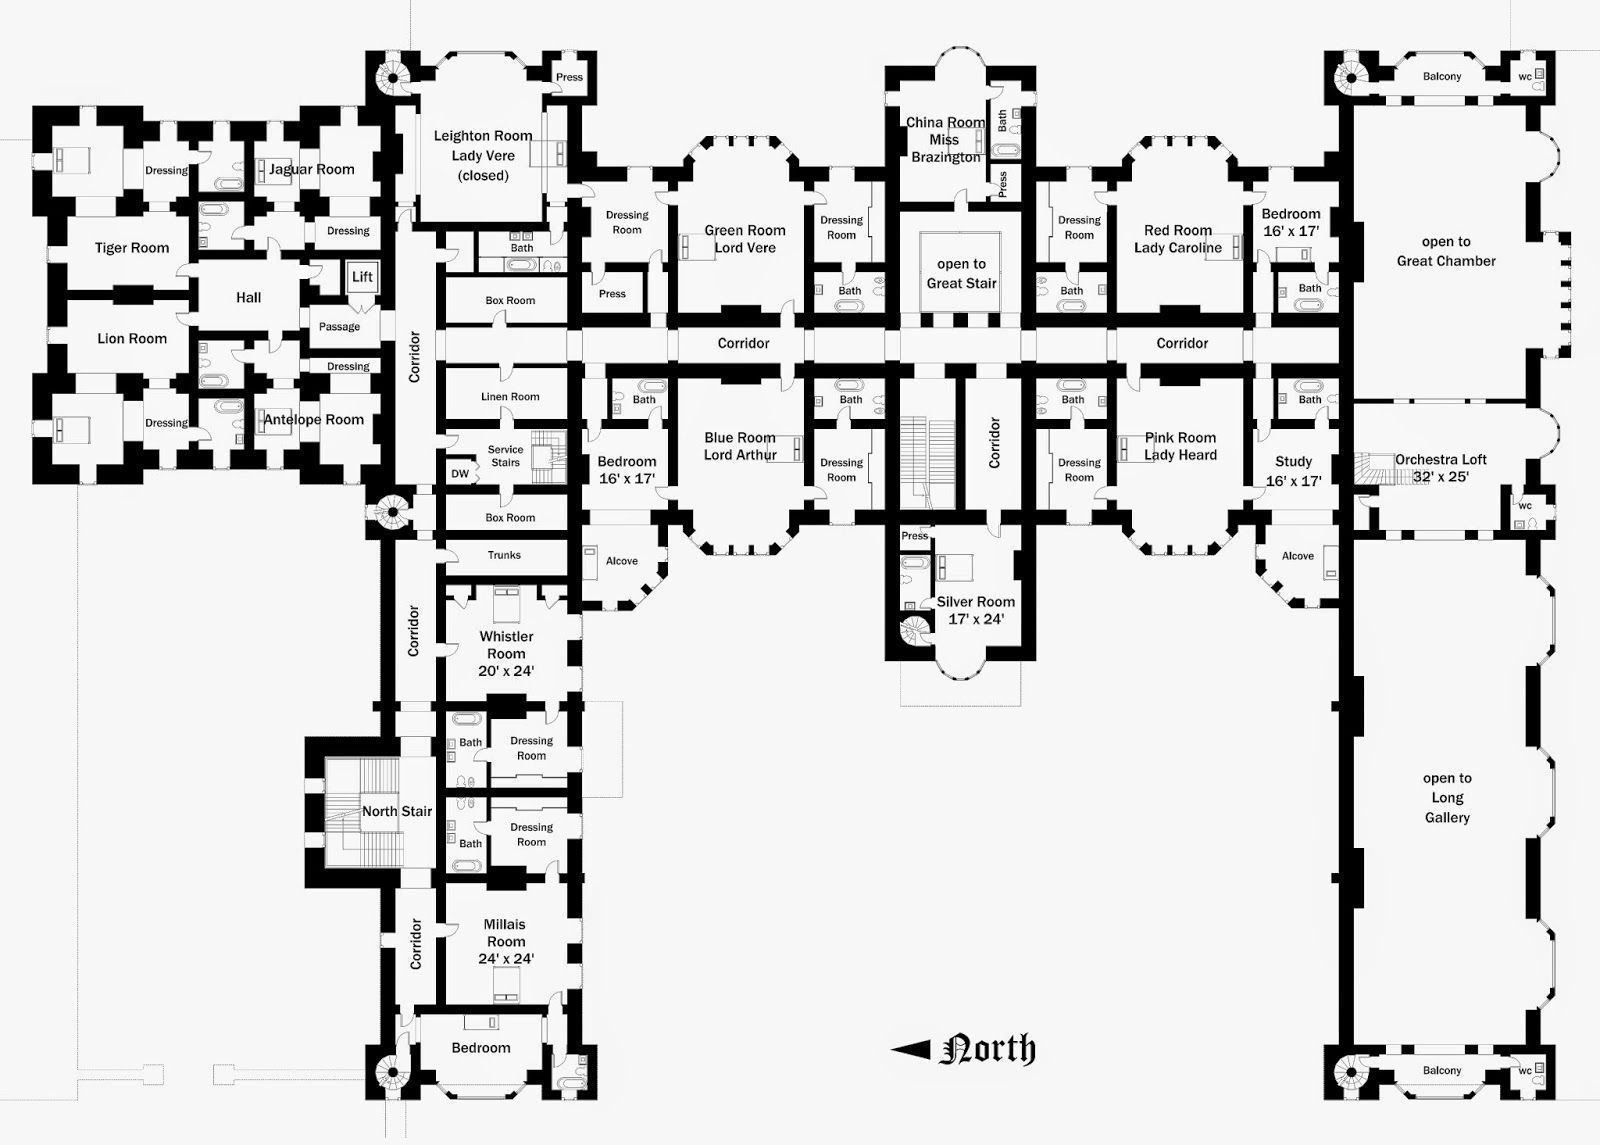 Ground Floor (open links in new tab/window for full size